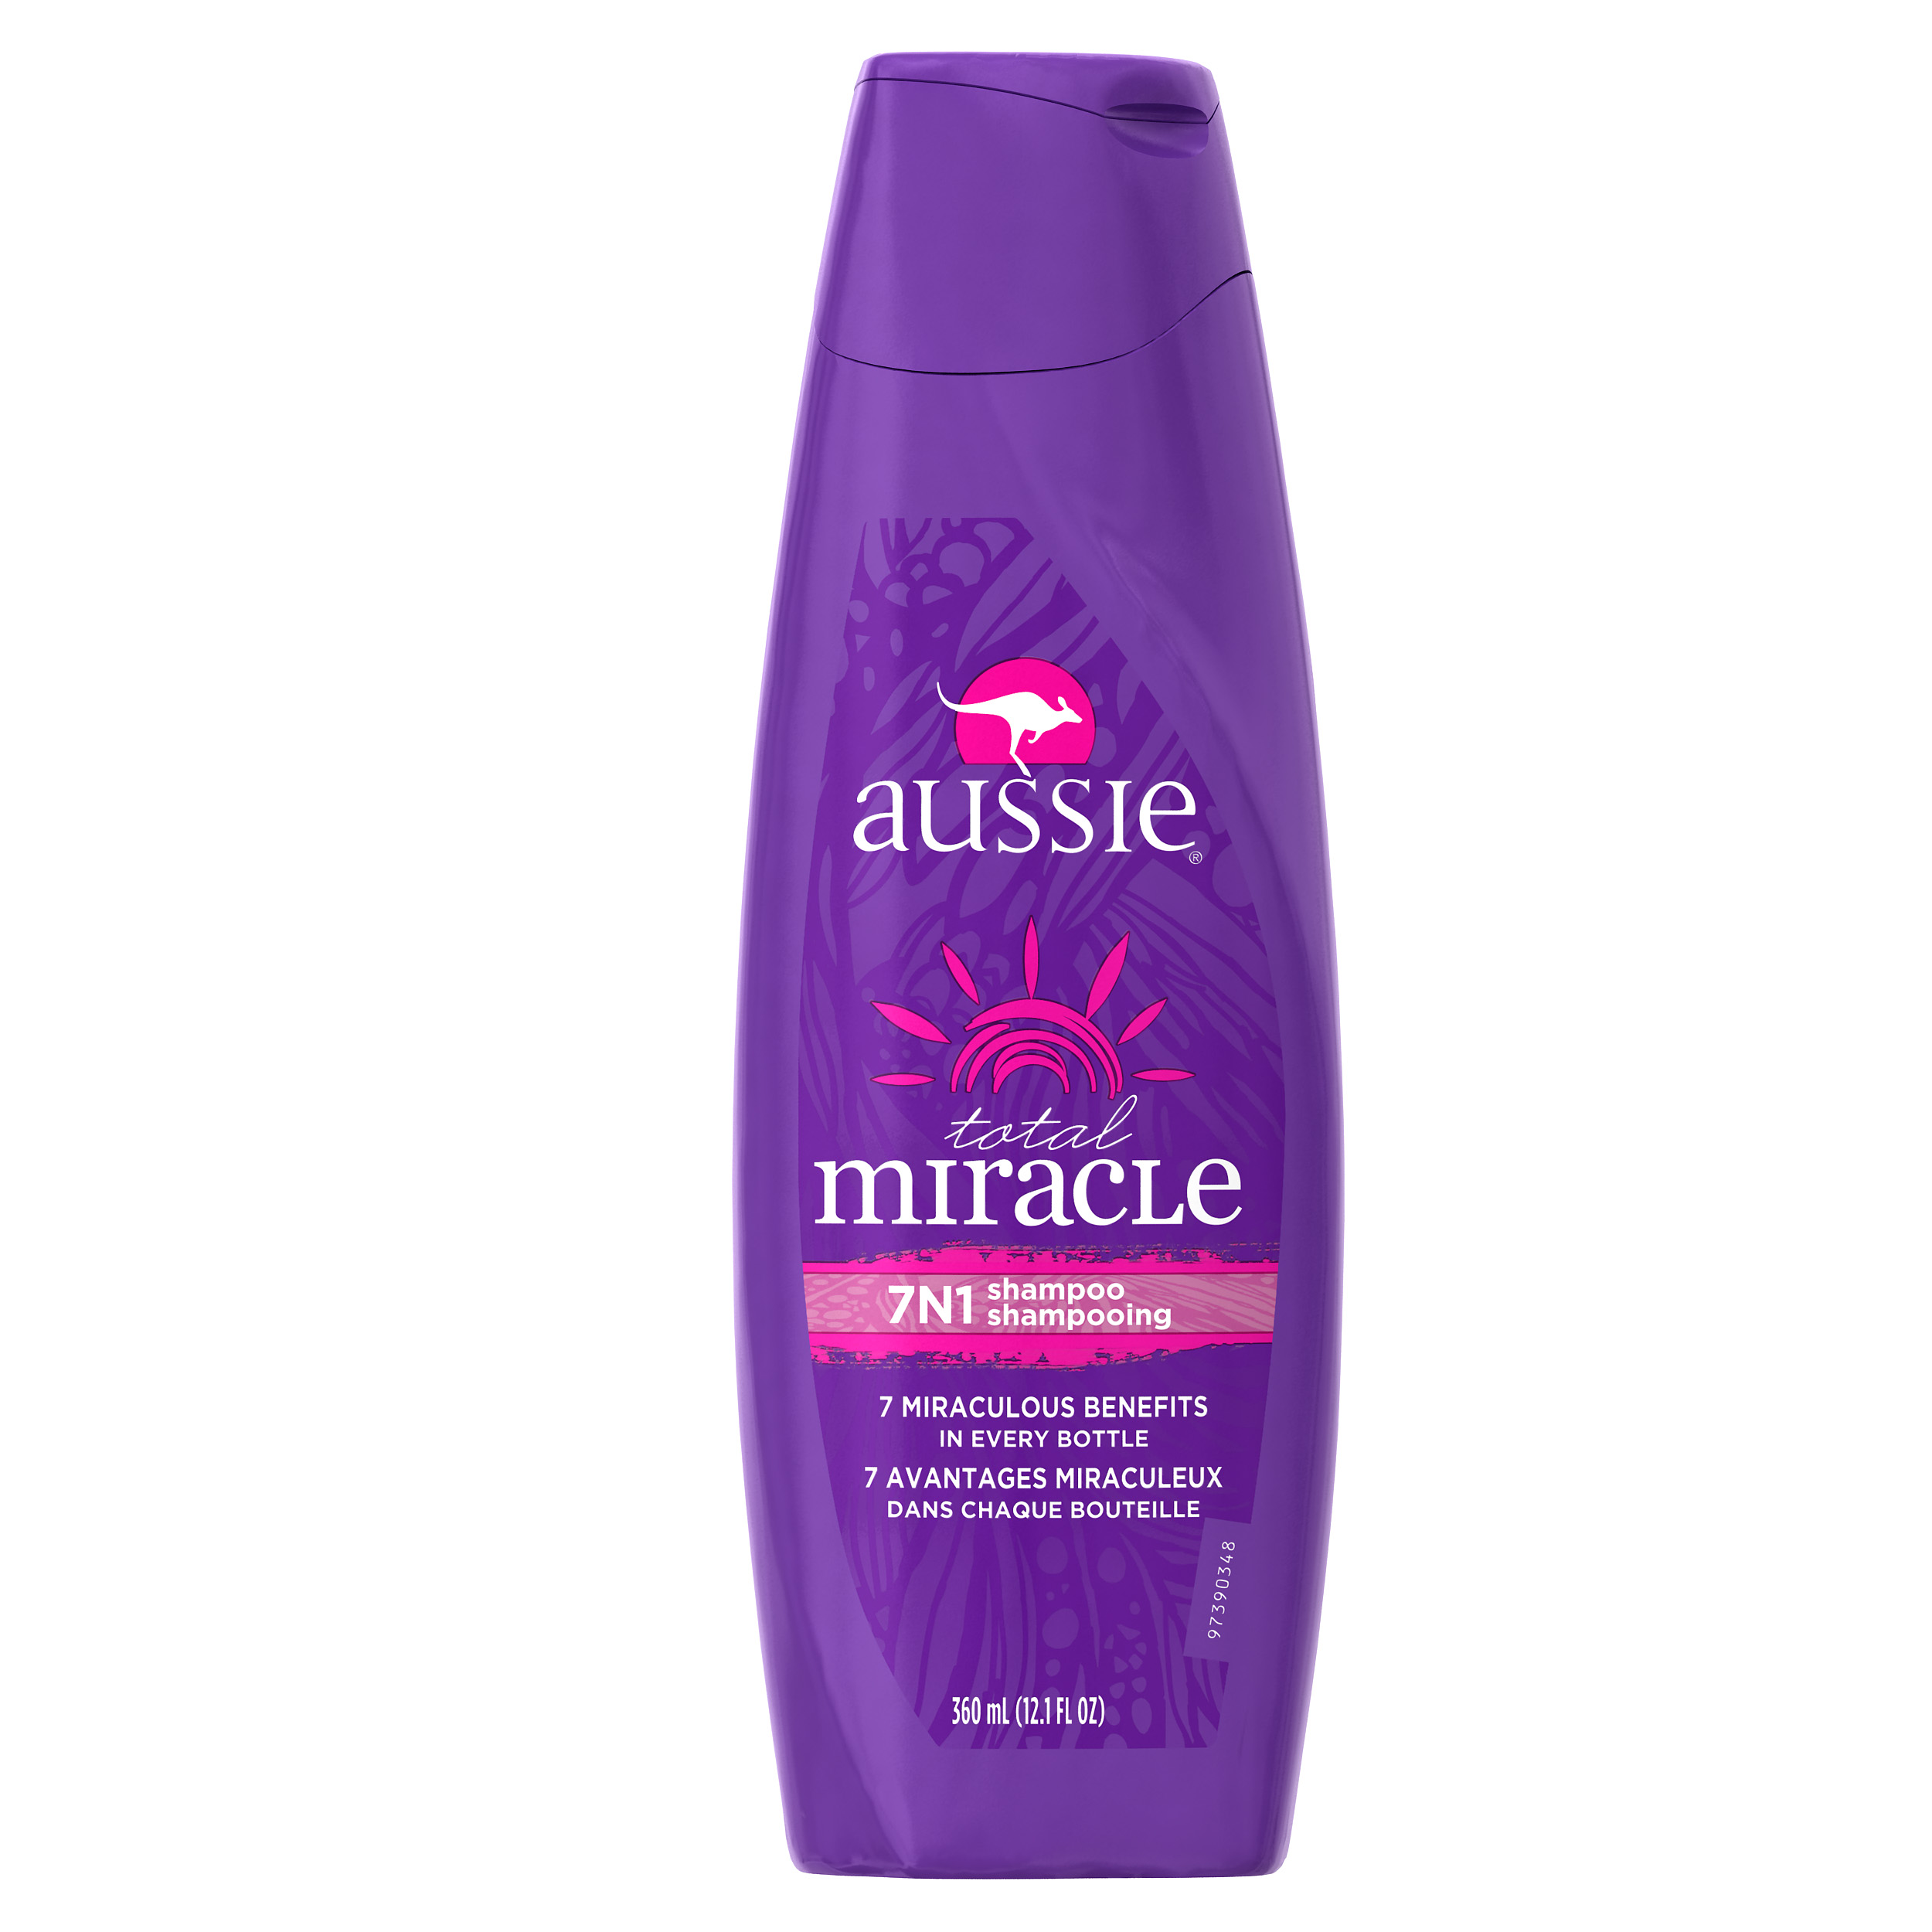 Aussie Total Miracle Collection 7N1 Shampoo 12.1 fl oz